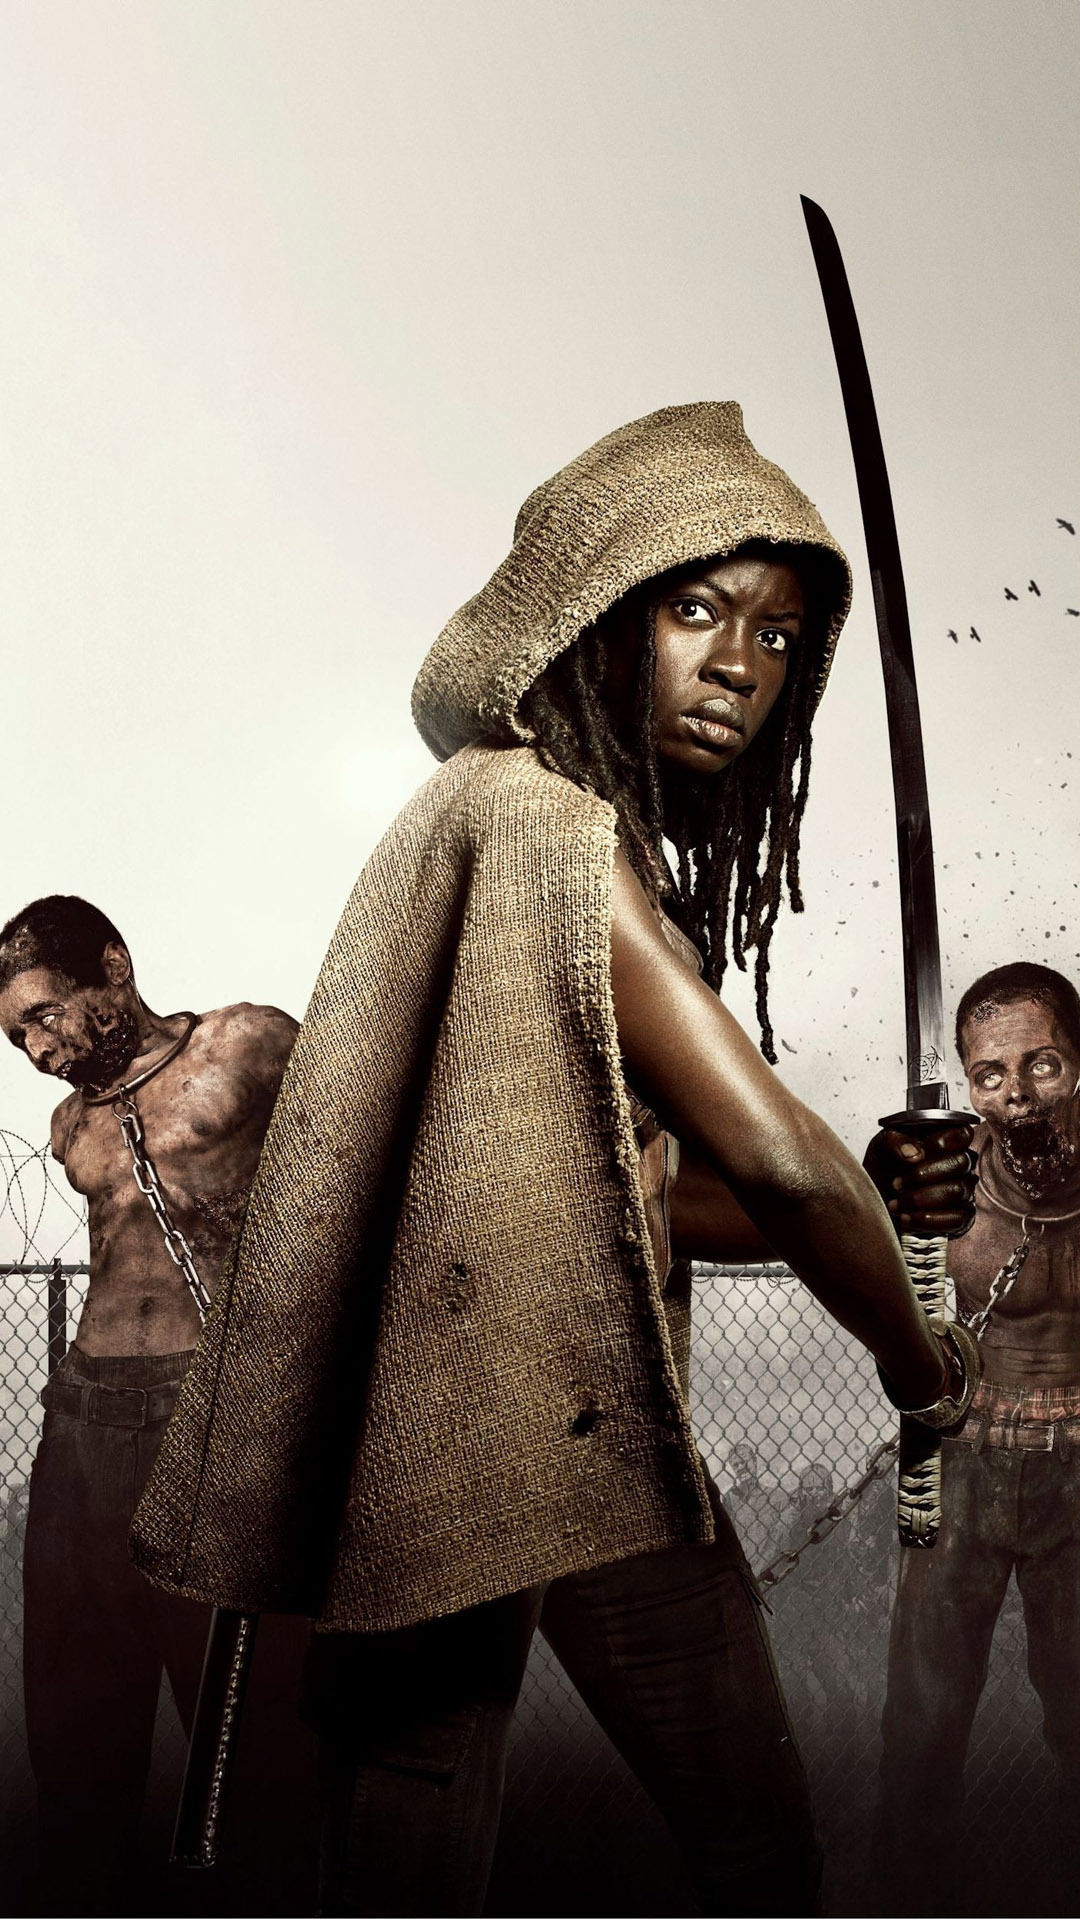 michonne-the-walking-dead-movie-mobile-wallpaper-1080x1920-8861-516036196